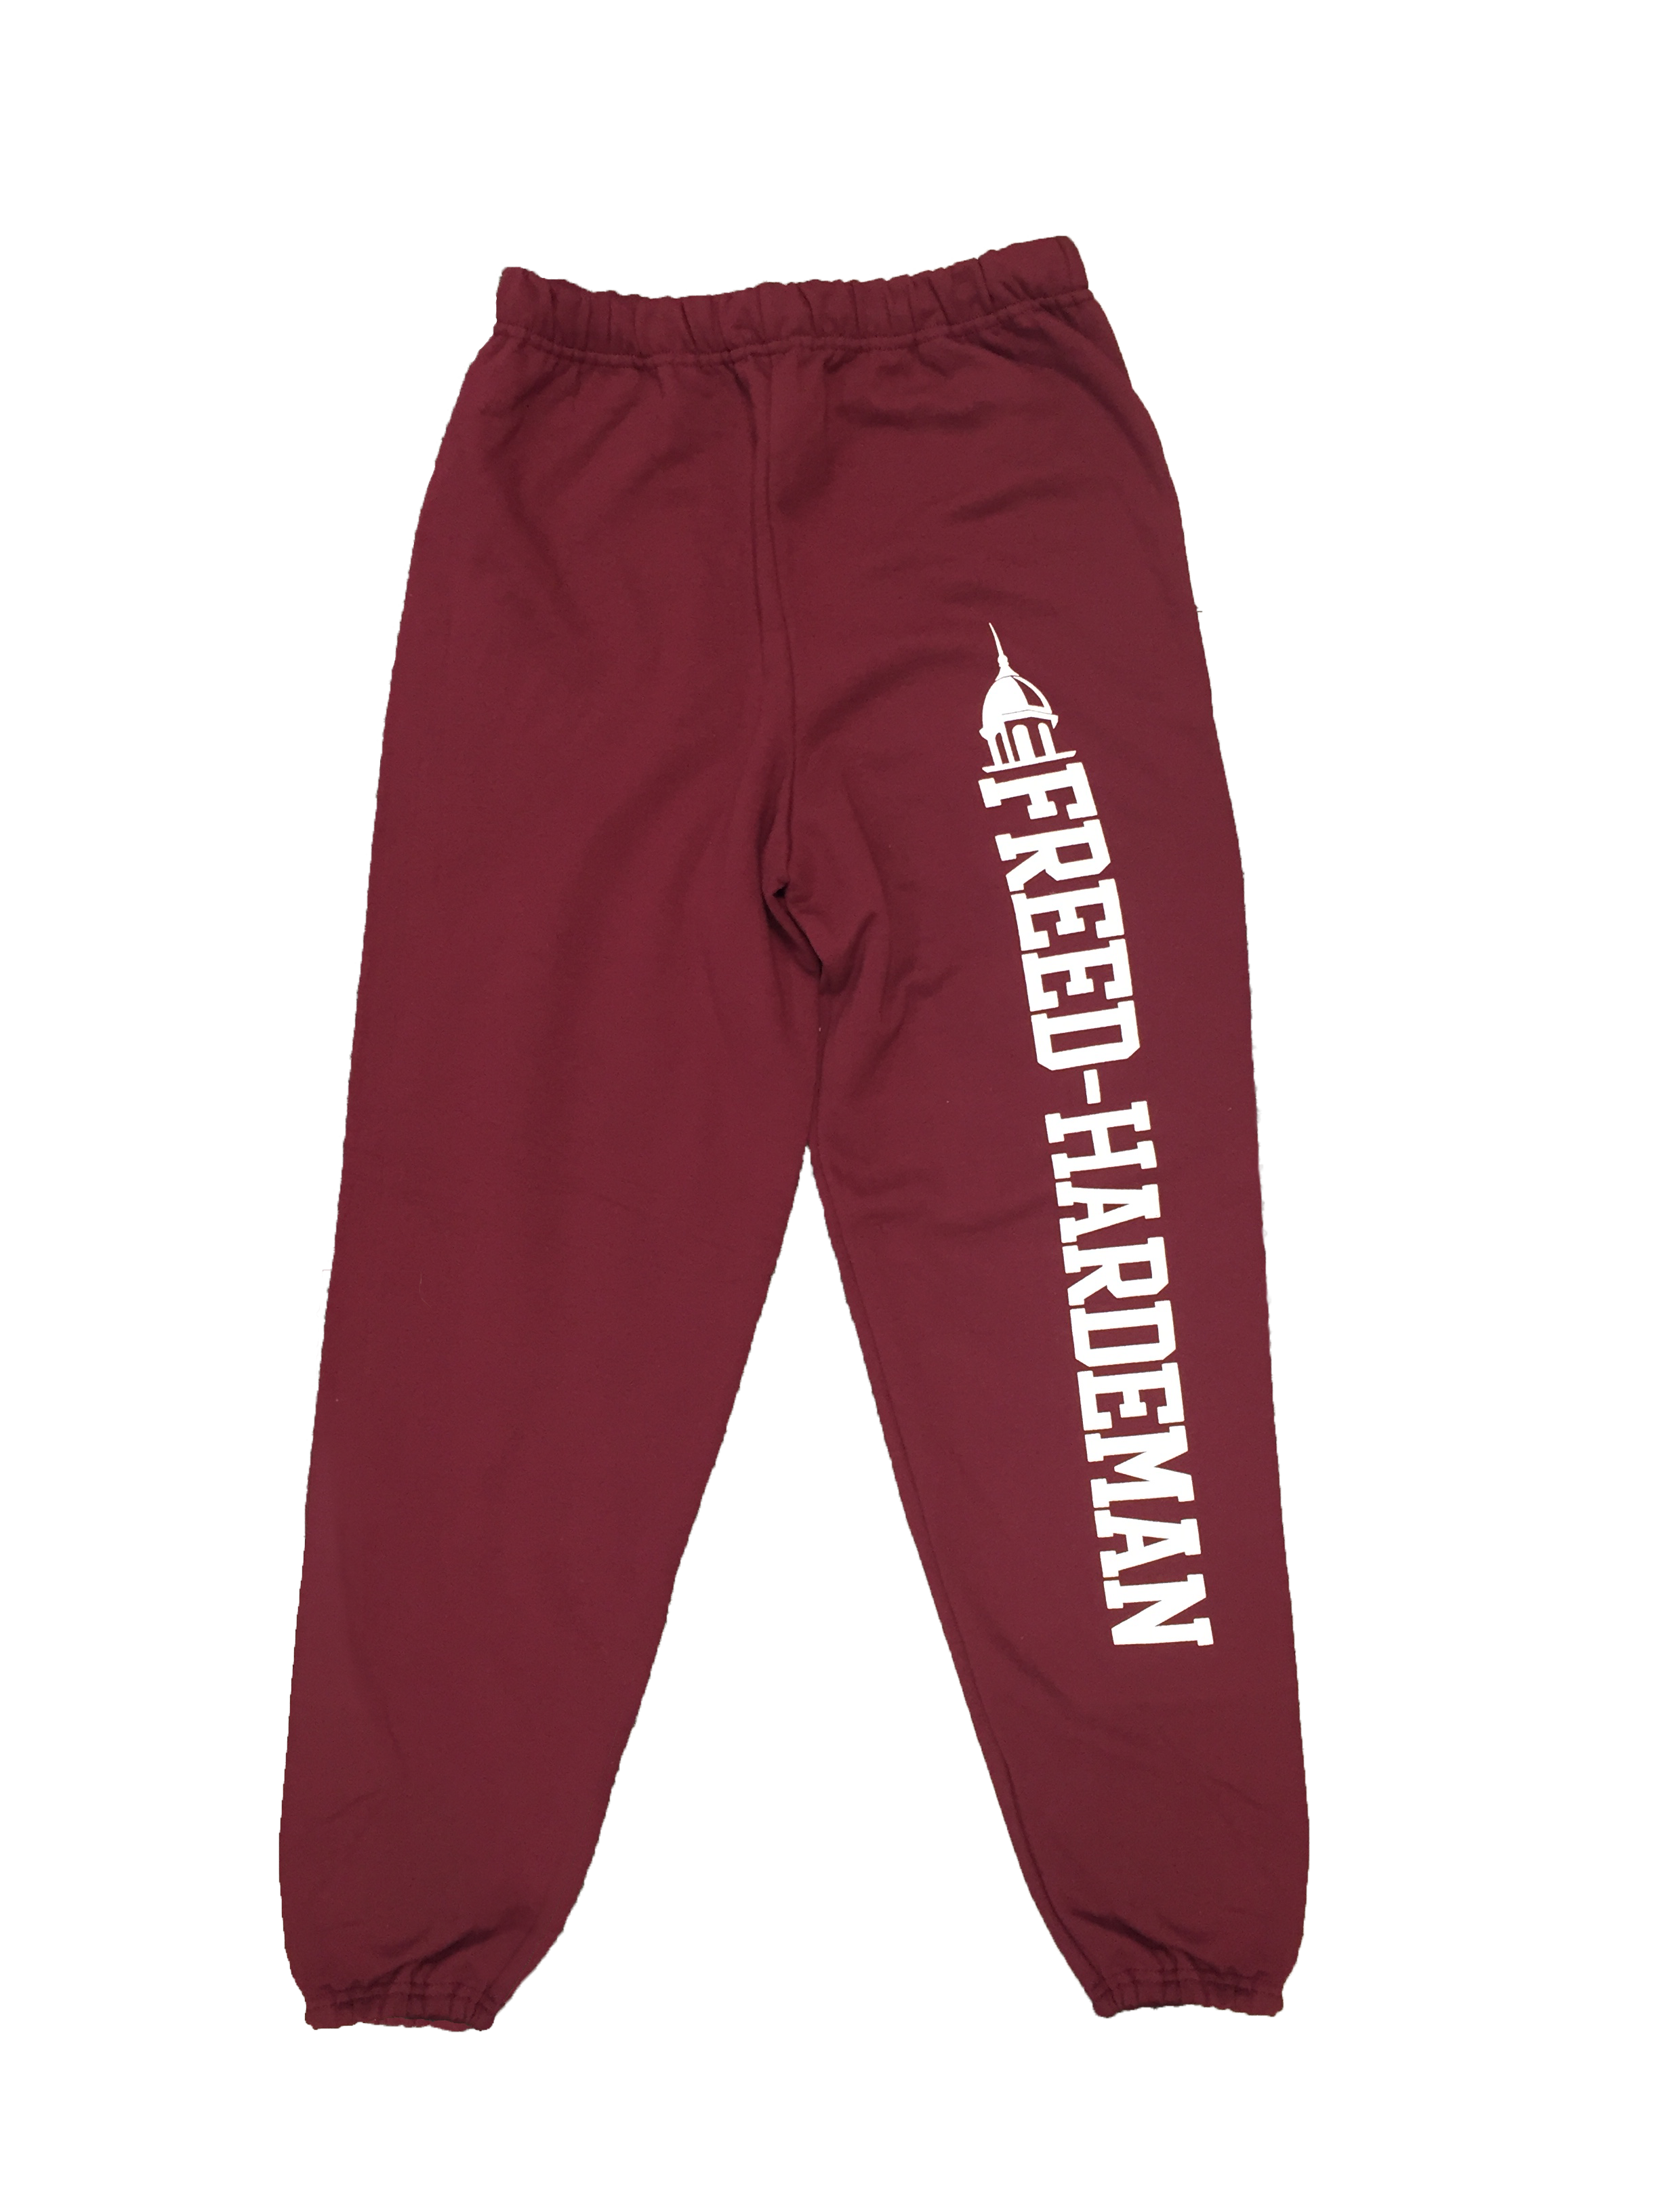 Belltower Sweatpants